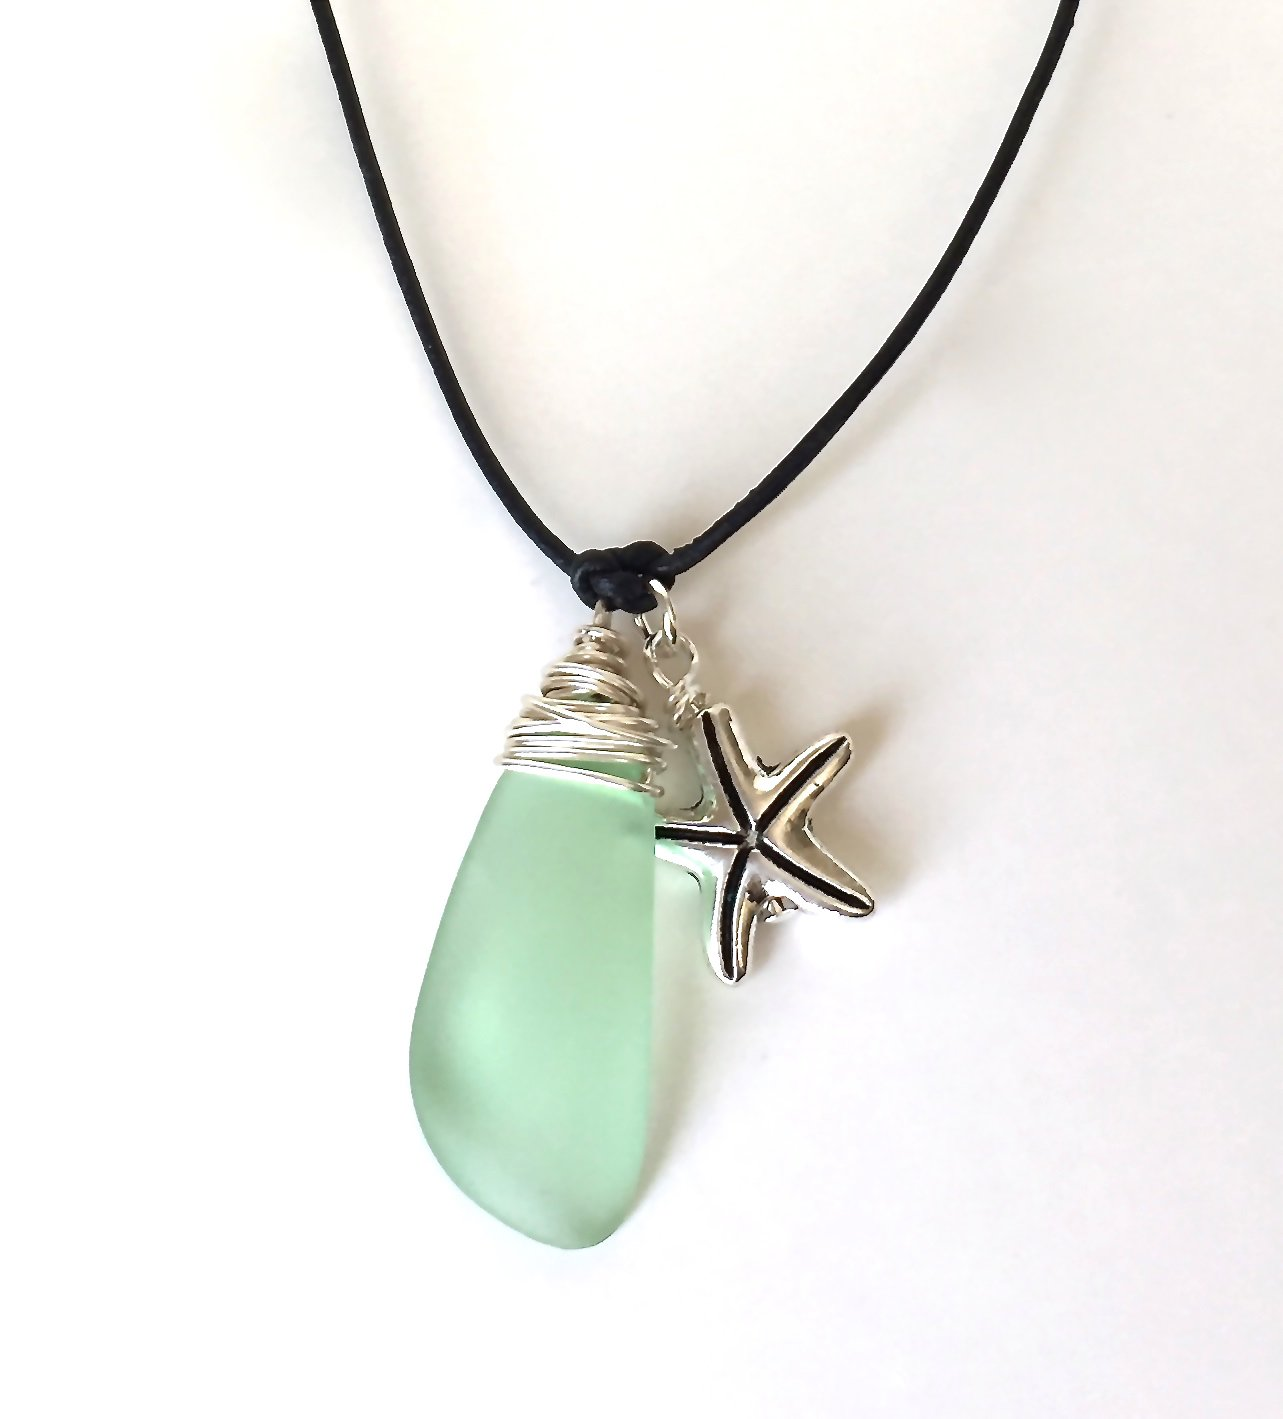 The SEA has my HEART Necklace with Seaglass and SeaShell Charm